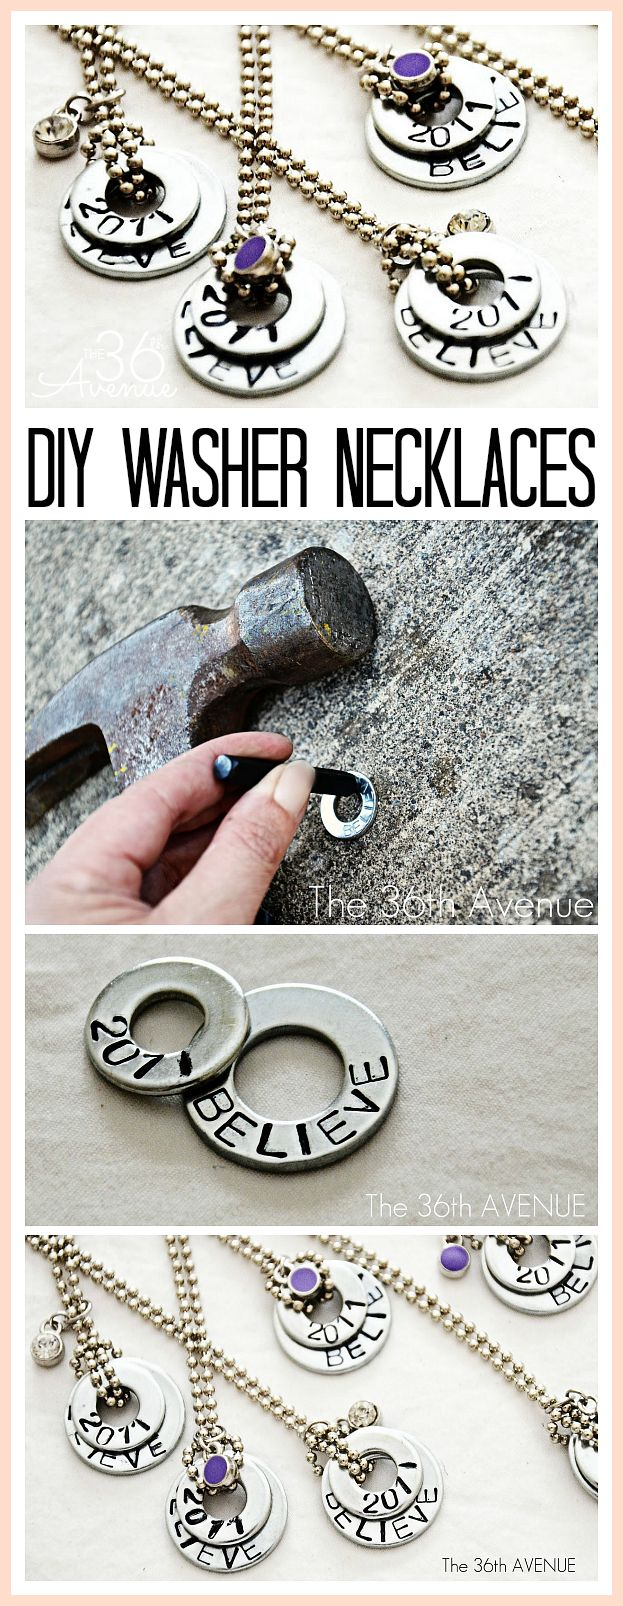 25 Handmade Gifts Under $5… I love these DIY Washer Necklaces. So many great ideas! #gifts #handmade #diy